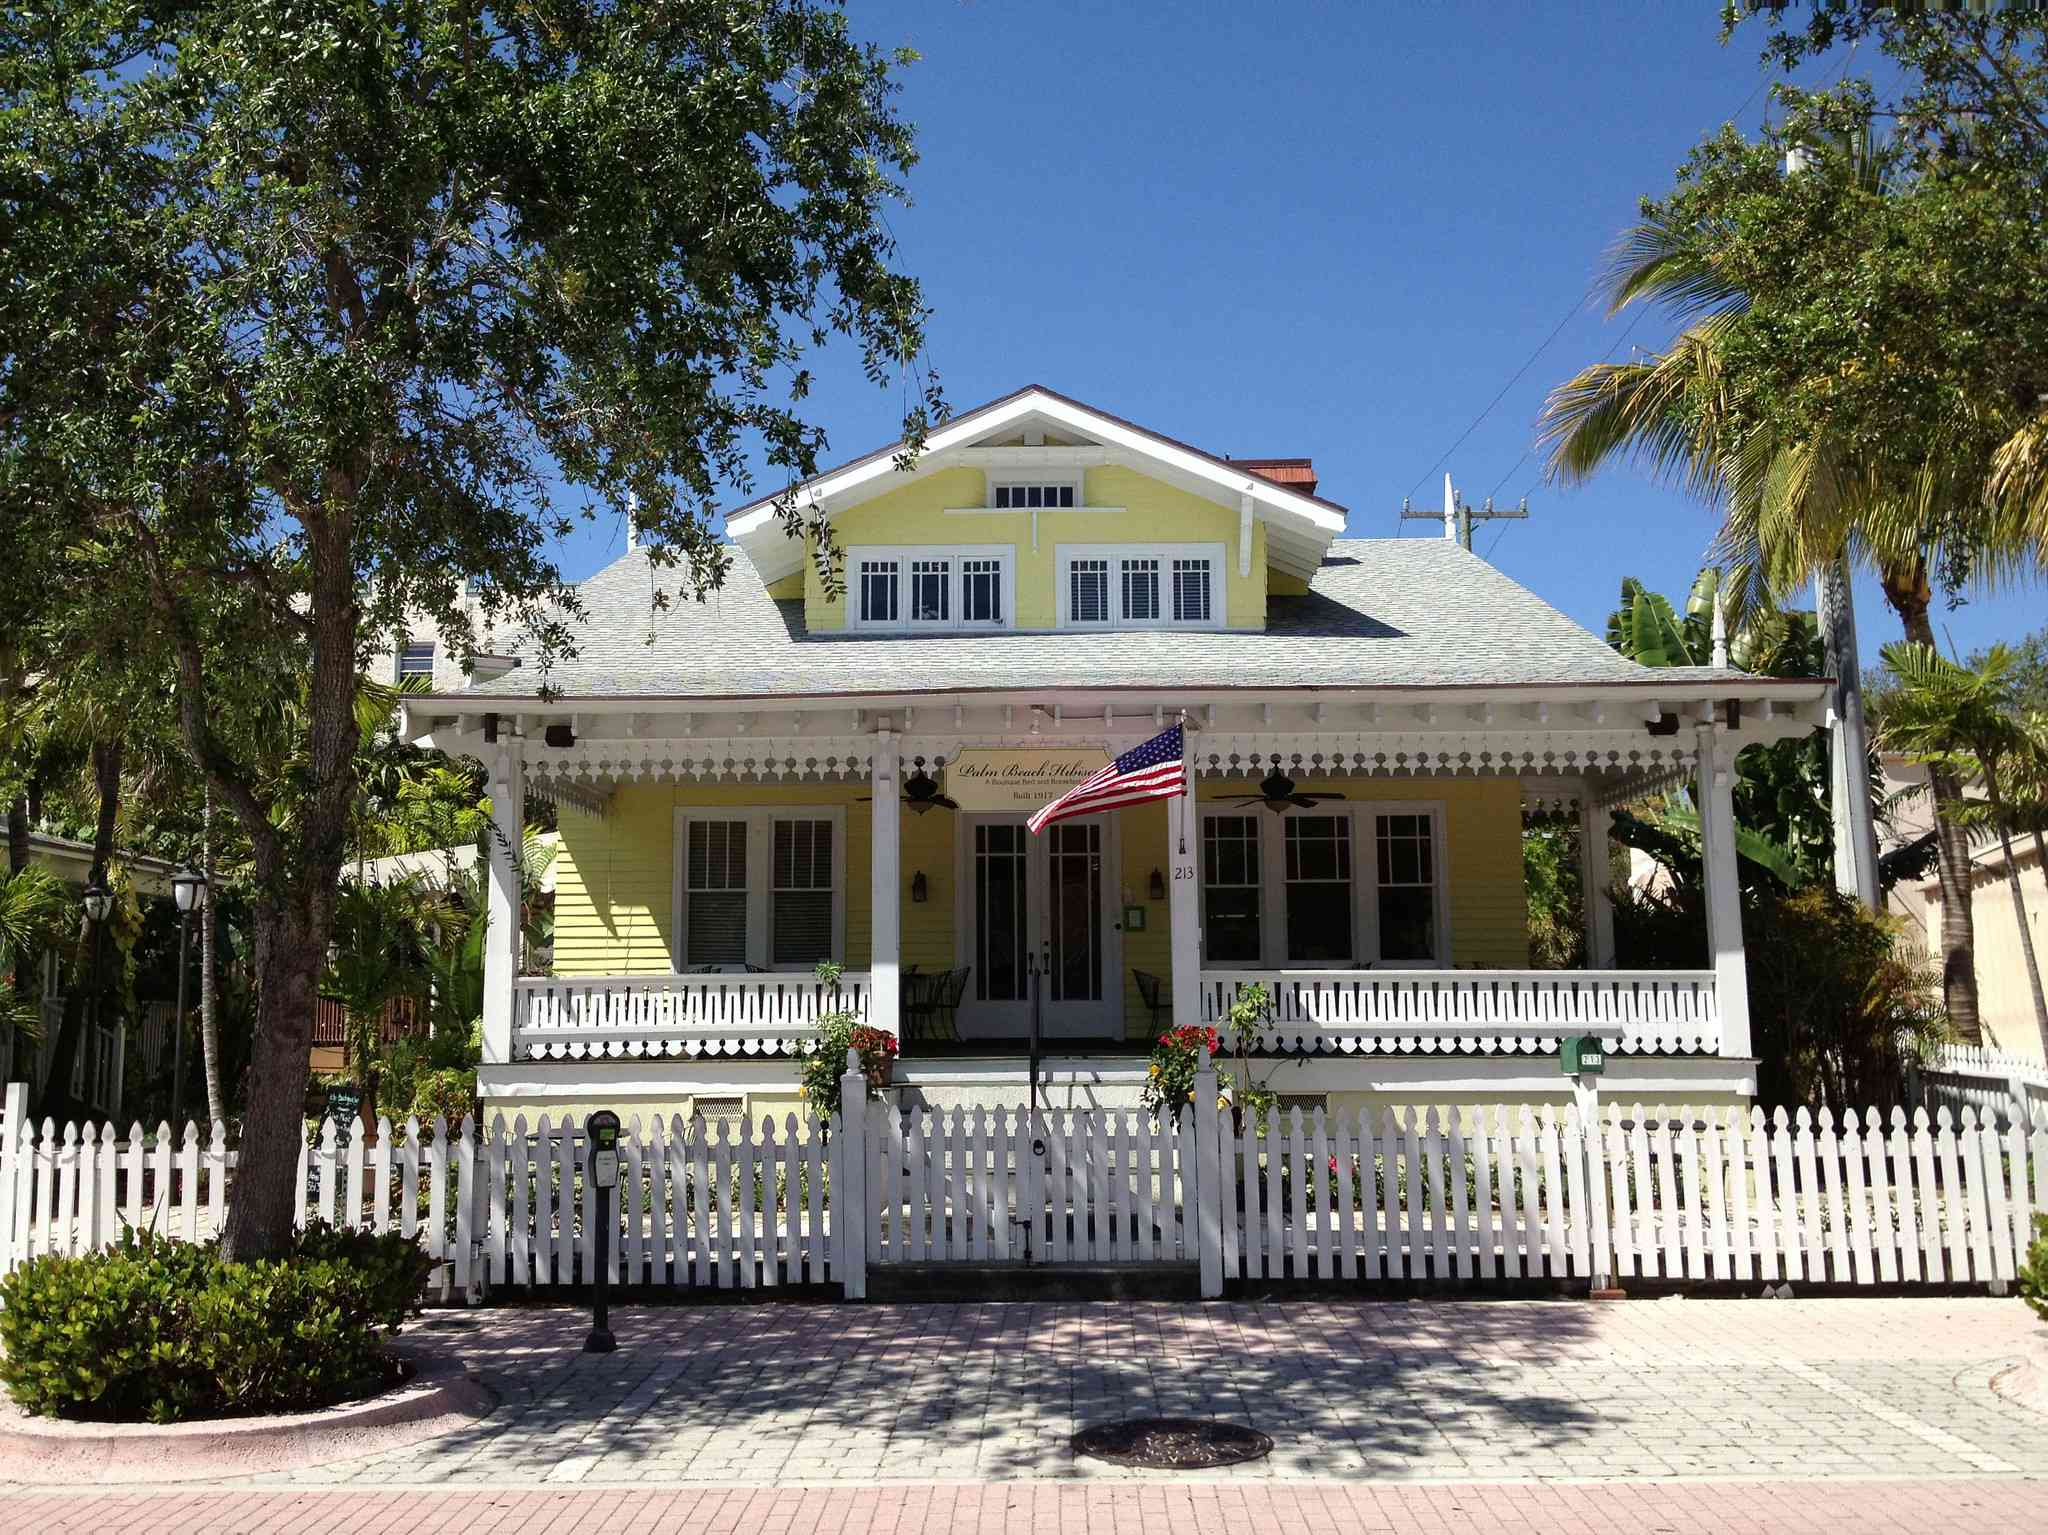 Exterior of Hibiscus Bed and Breakfast